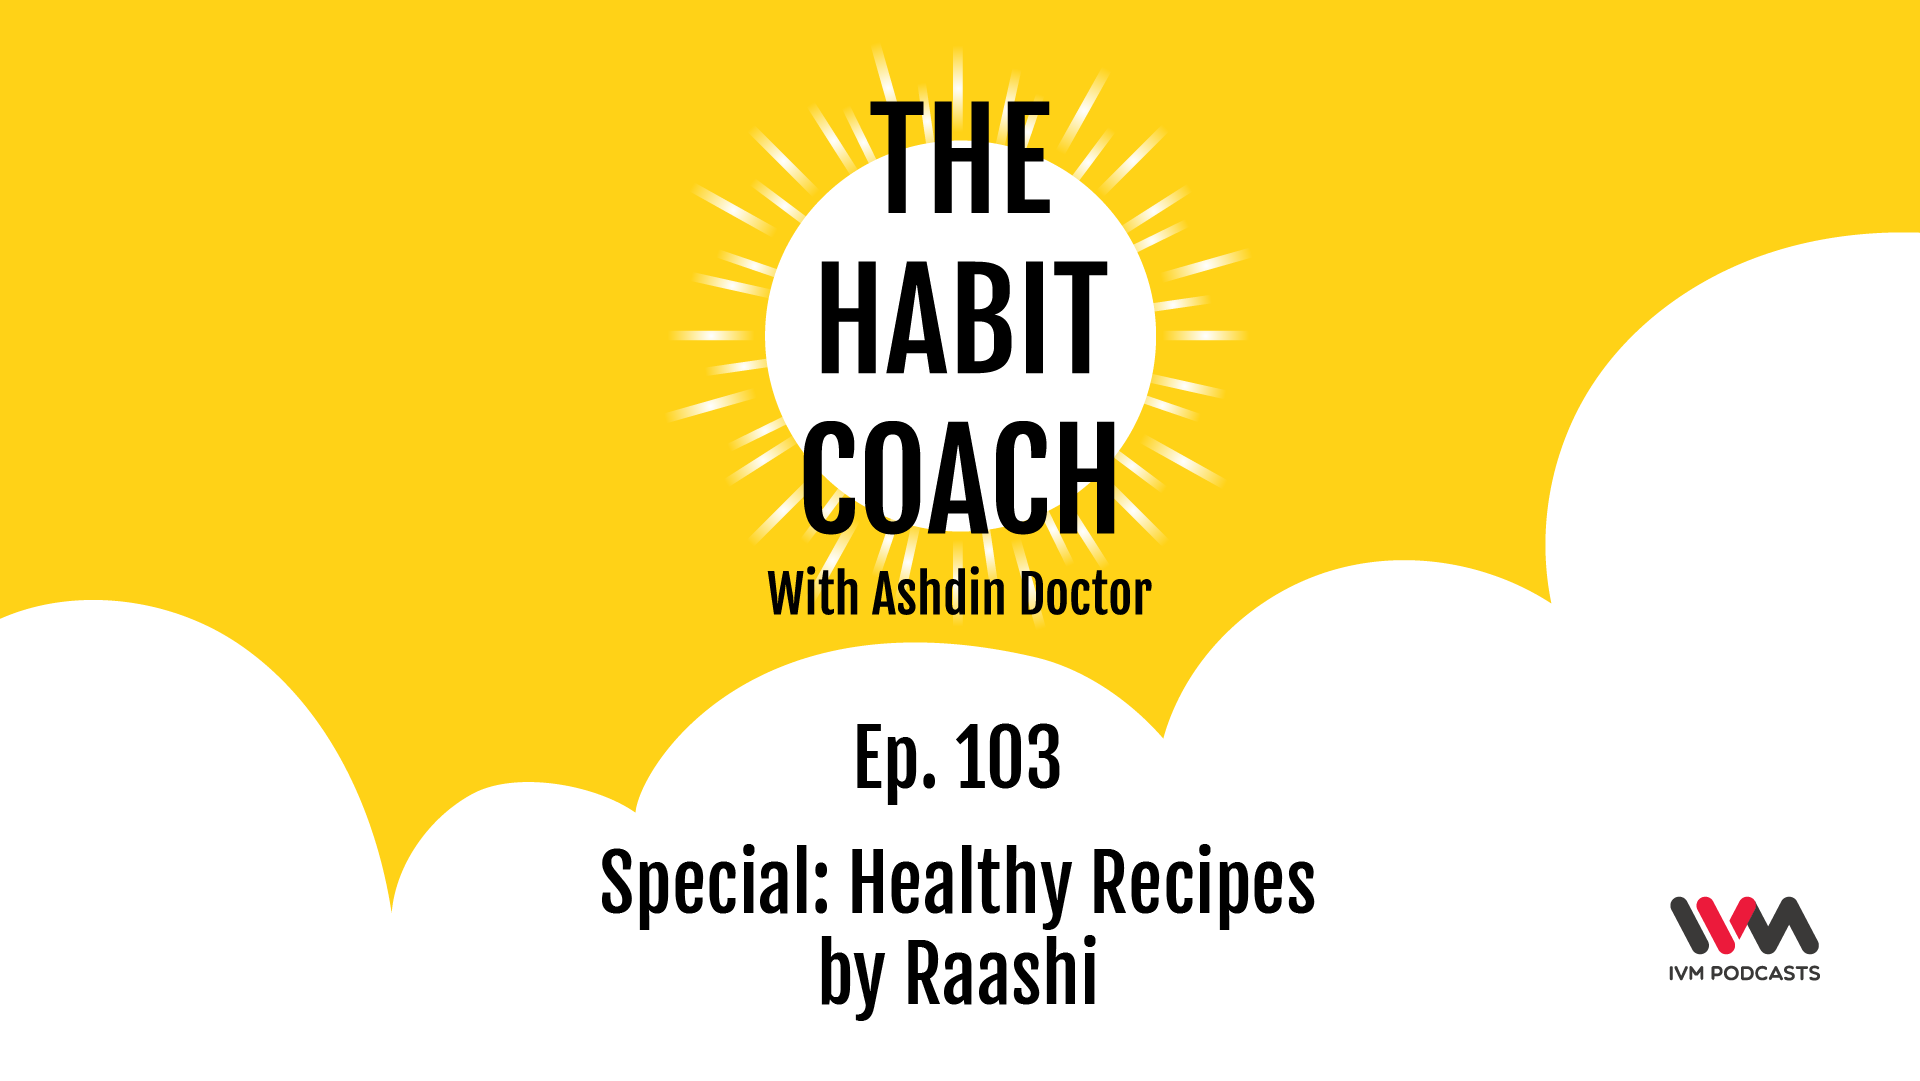 TheHabitCoachEpisode103.png